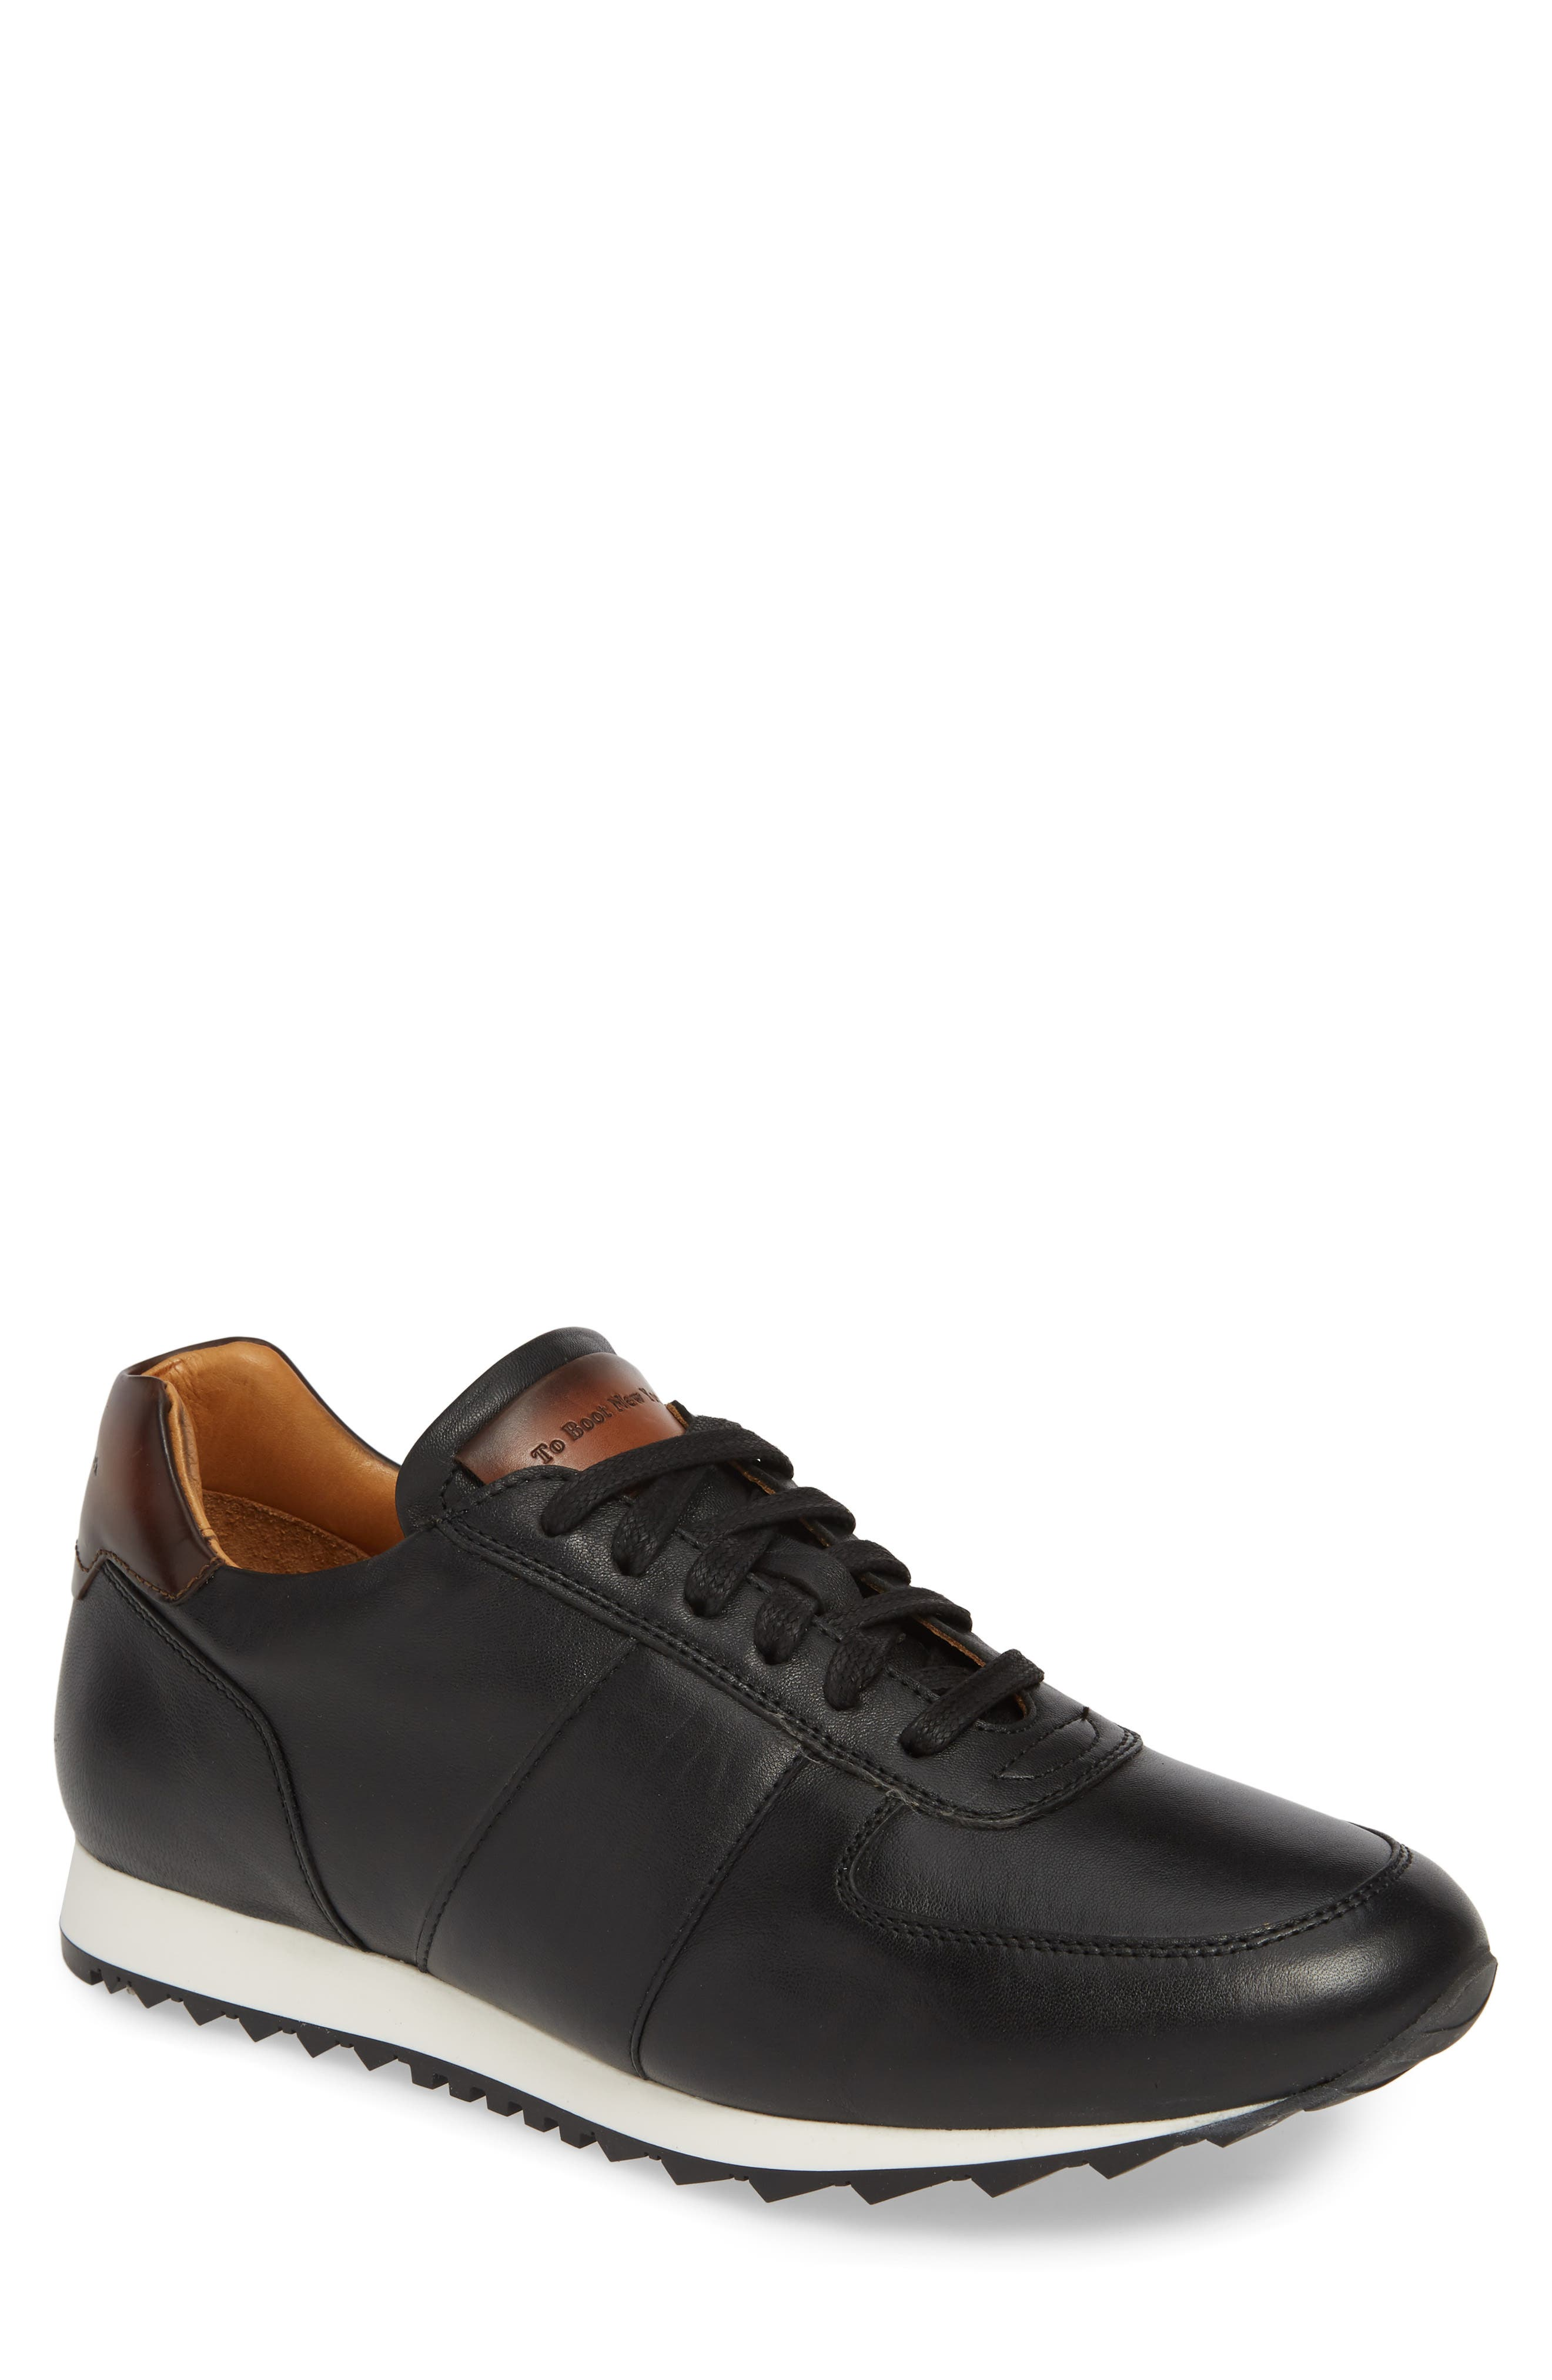 To Boot New York Daytona Sneaker, Black